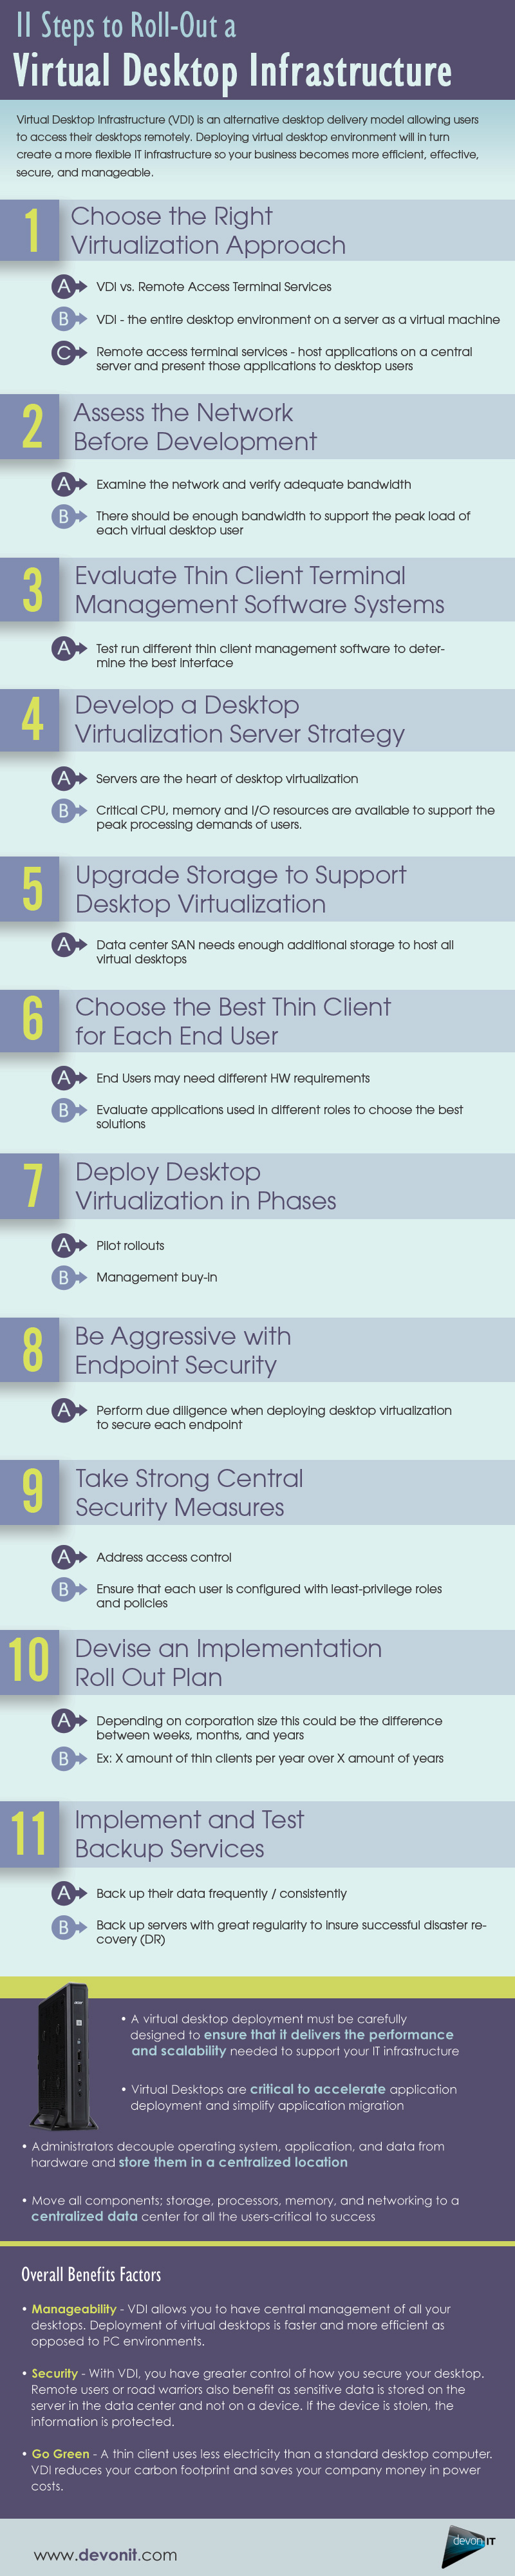 11 Steps to Roll-Out a Virtual Desktop Infrastructure